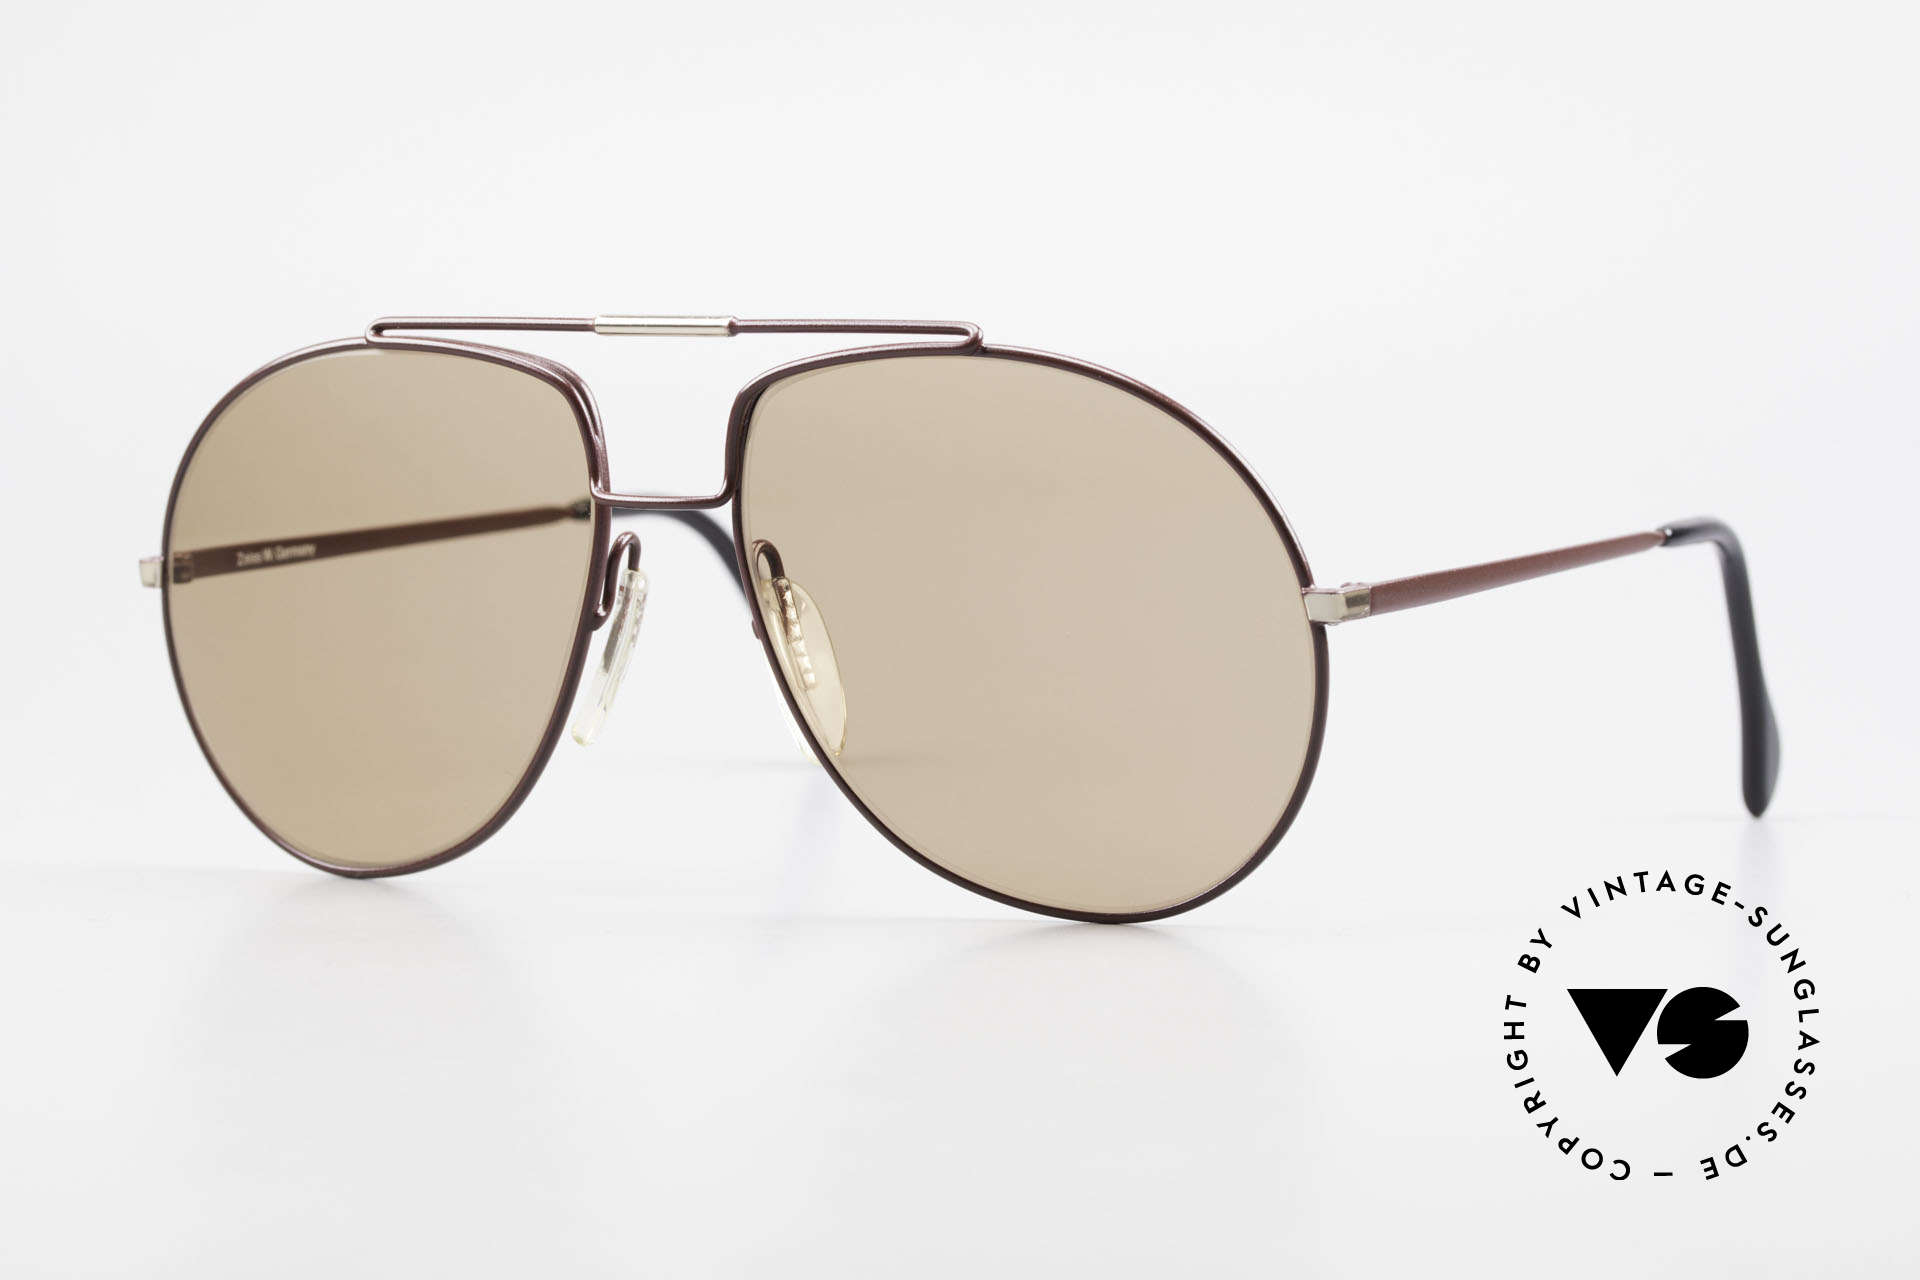 Zeiss 9369 80's Frame With Mineral Lenses, timeless, classic Zeiss vintage sunglasses of the 1980's, Made for Men